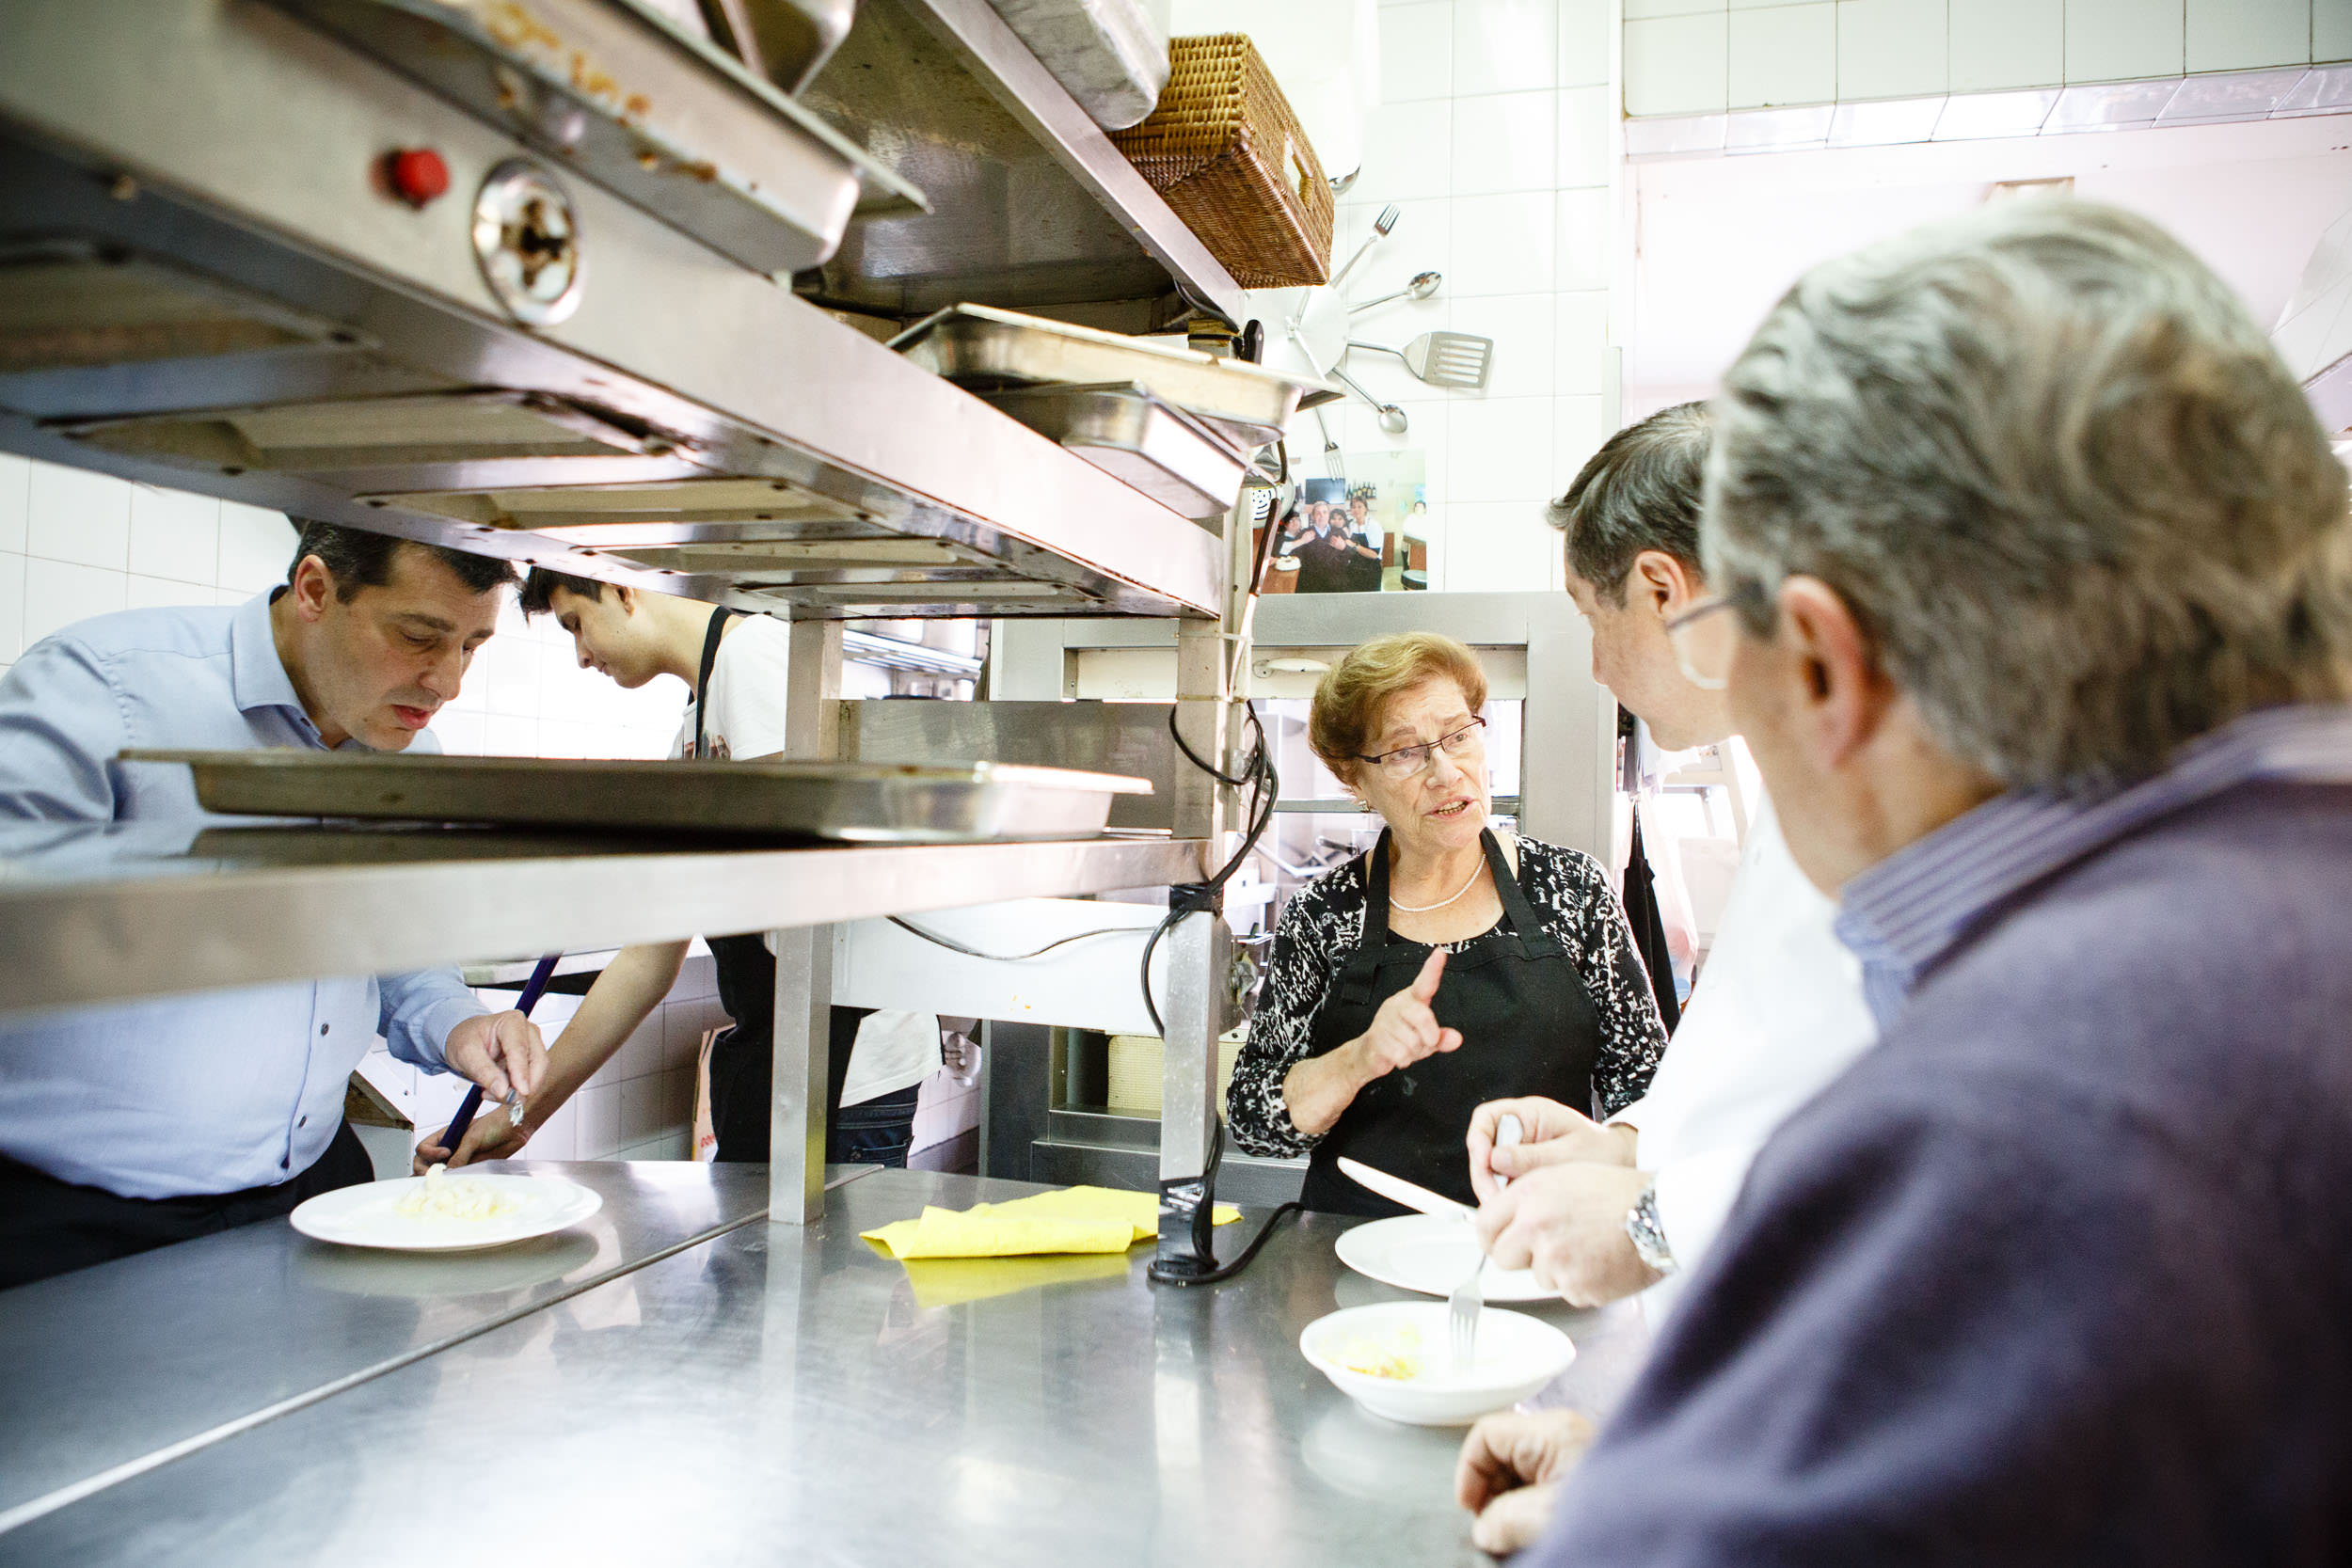 14/3/14 Brothers Joan and Josep (left) with parents in kitchen of parents' restaurant, Can Roca, Girona, Spain. Photo by James Sturcke | www.sturcke.org